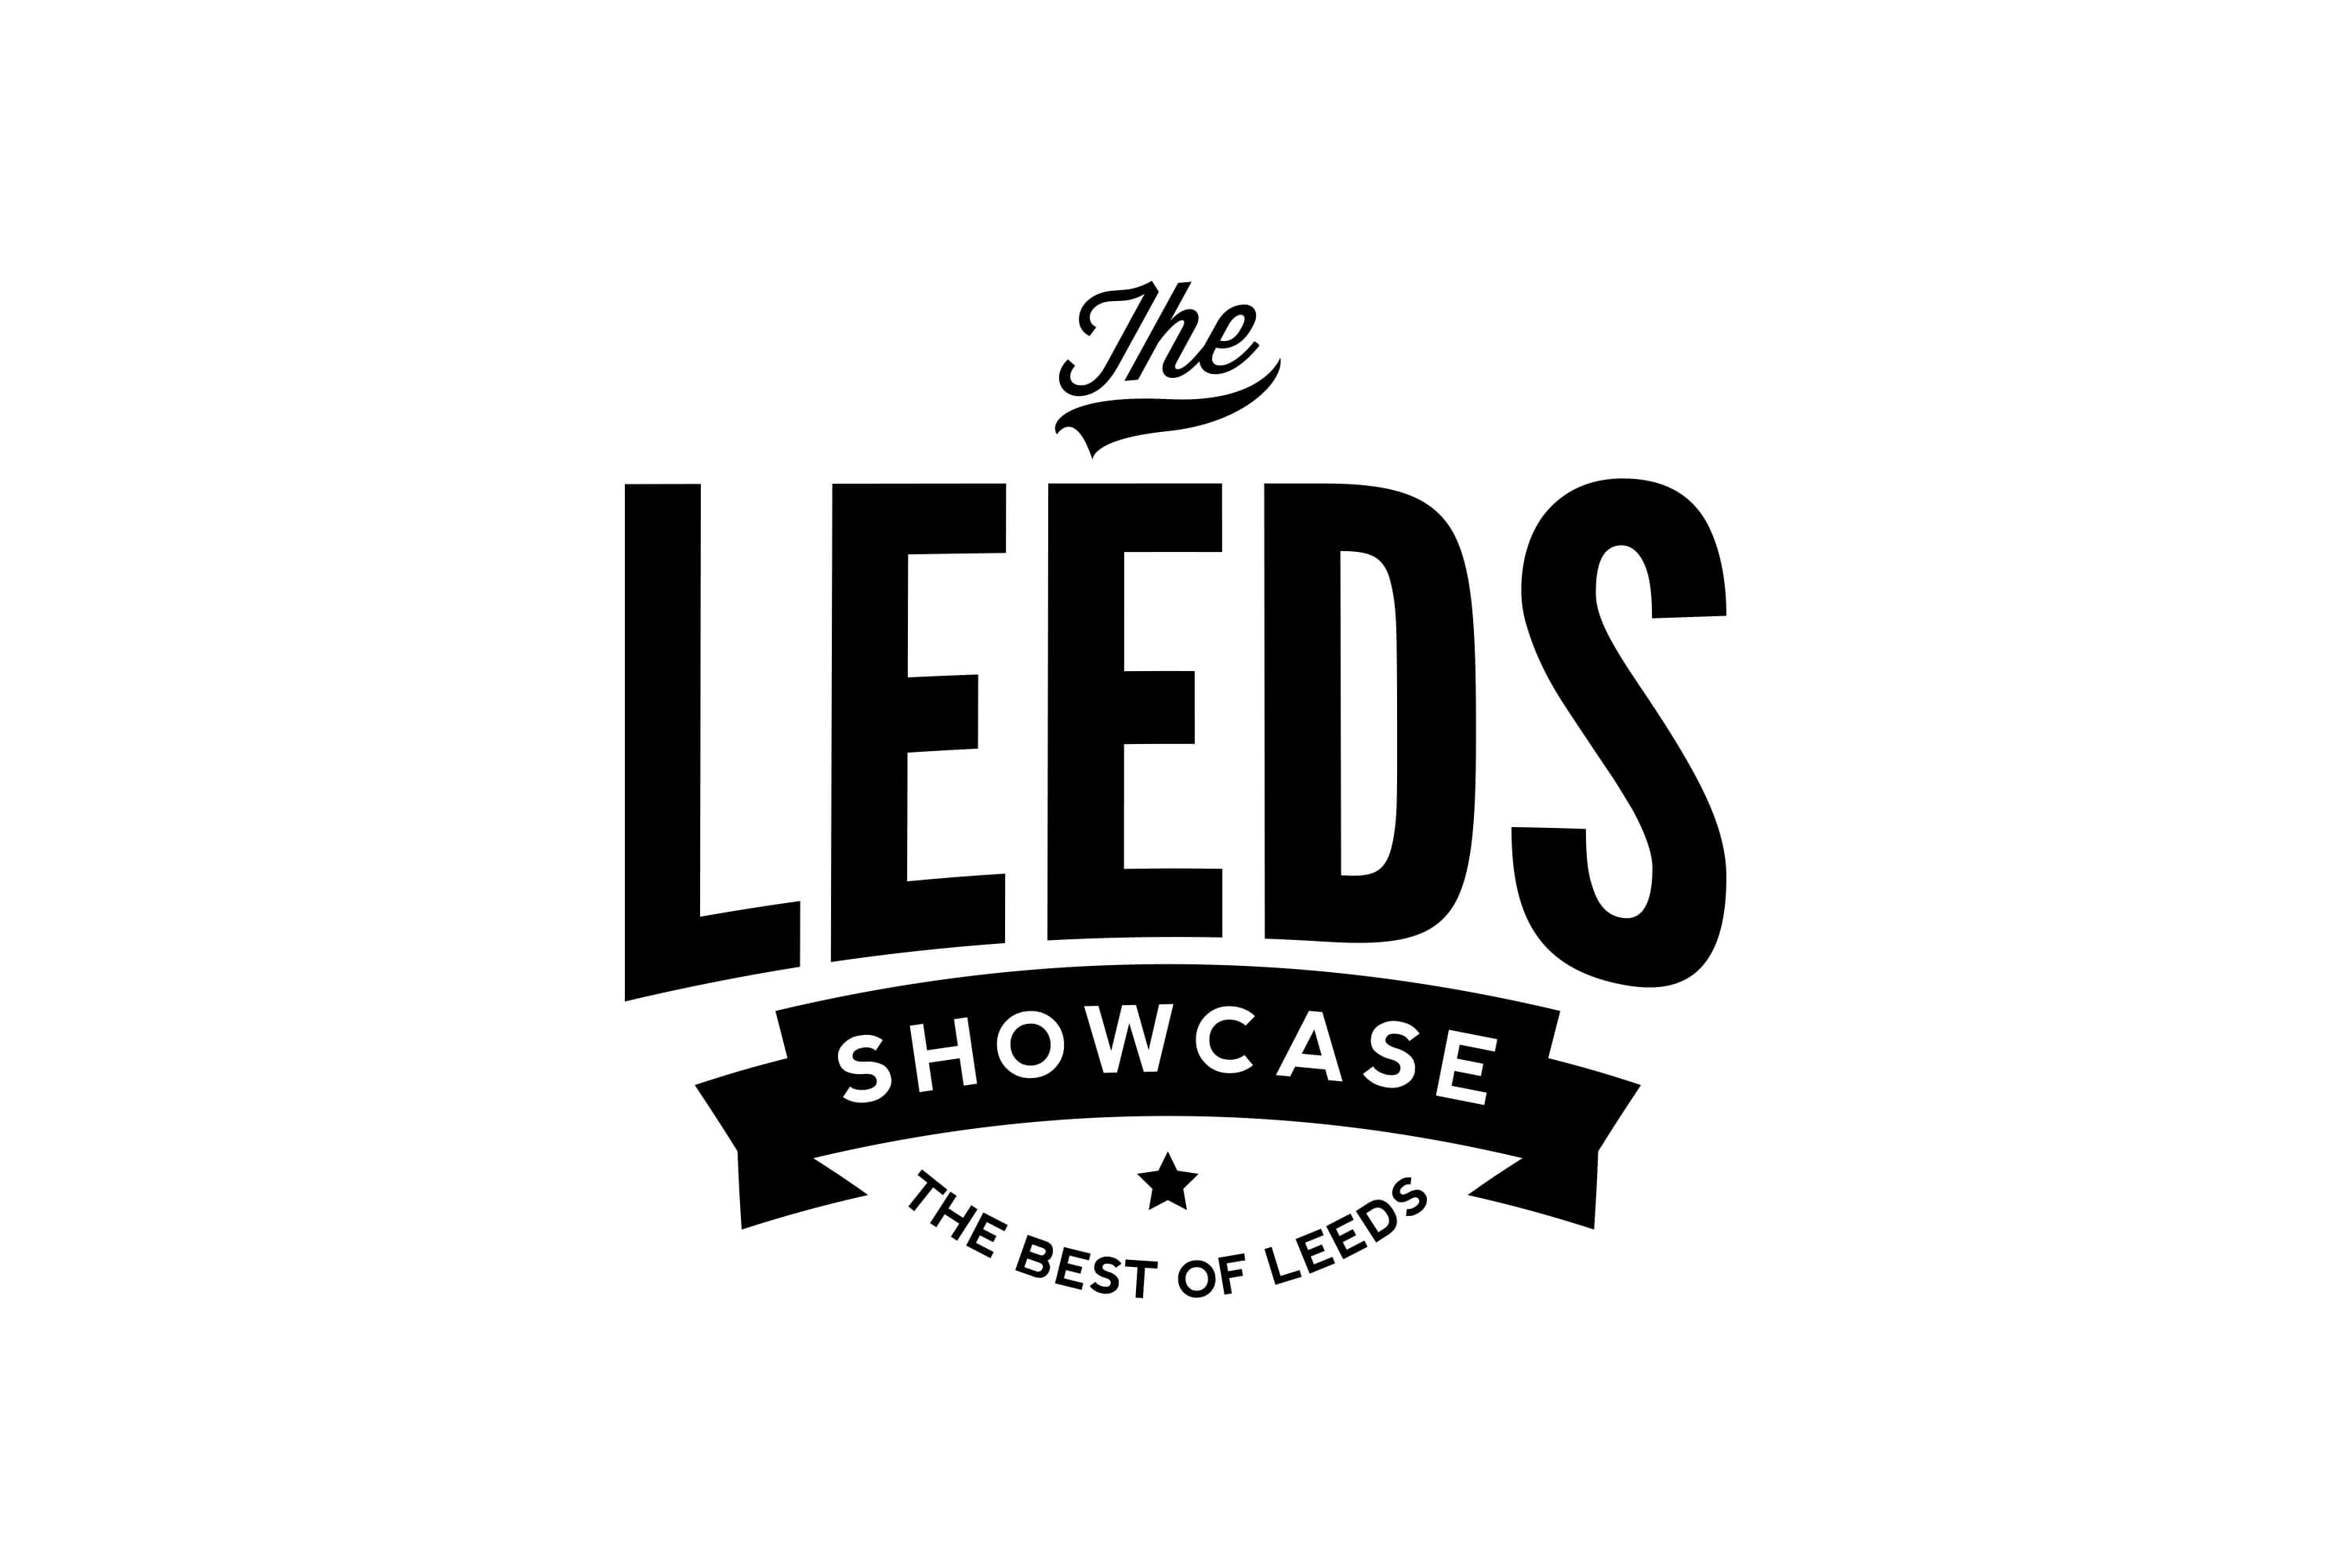 Leeds Showcase Jpg